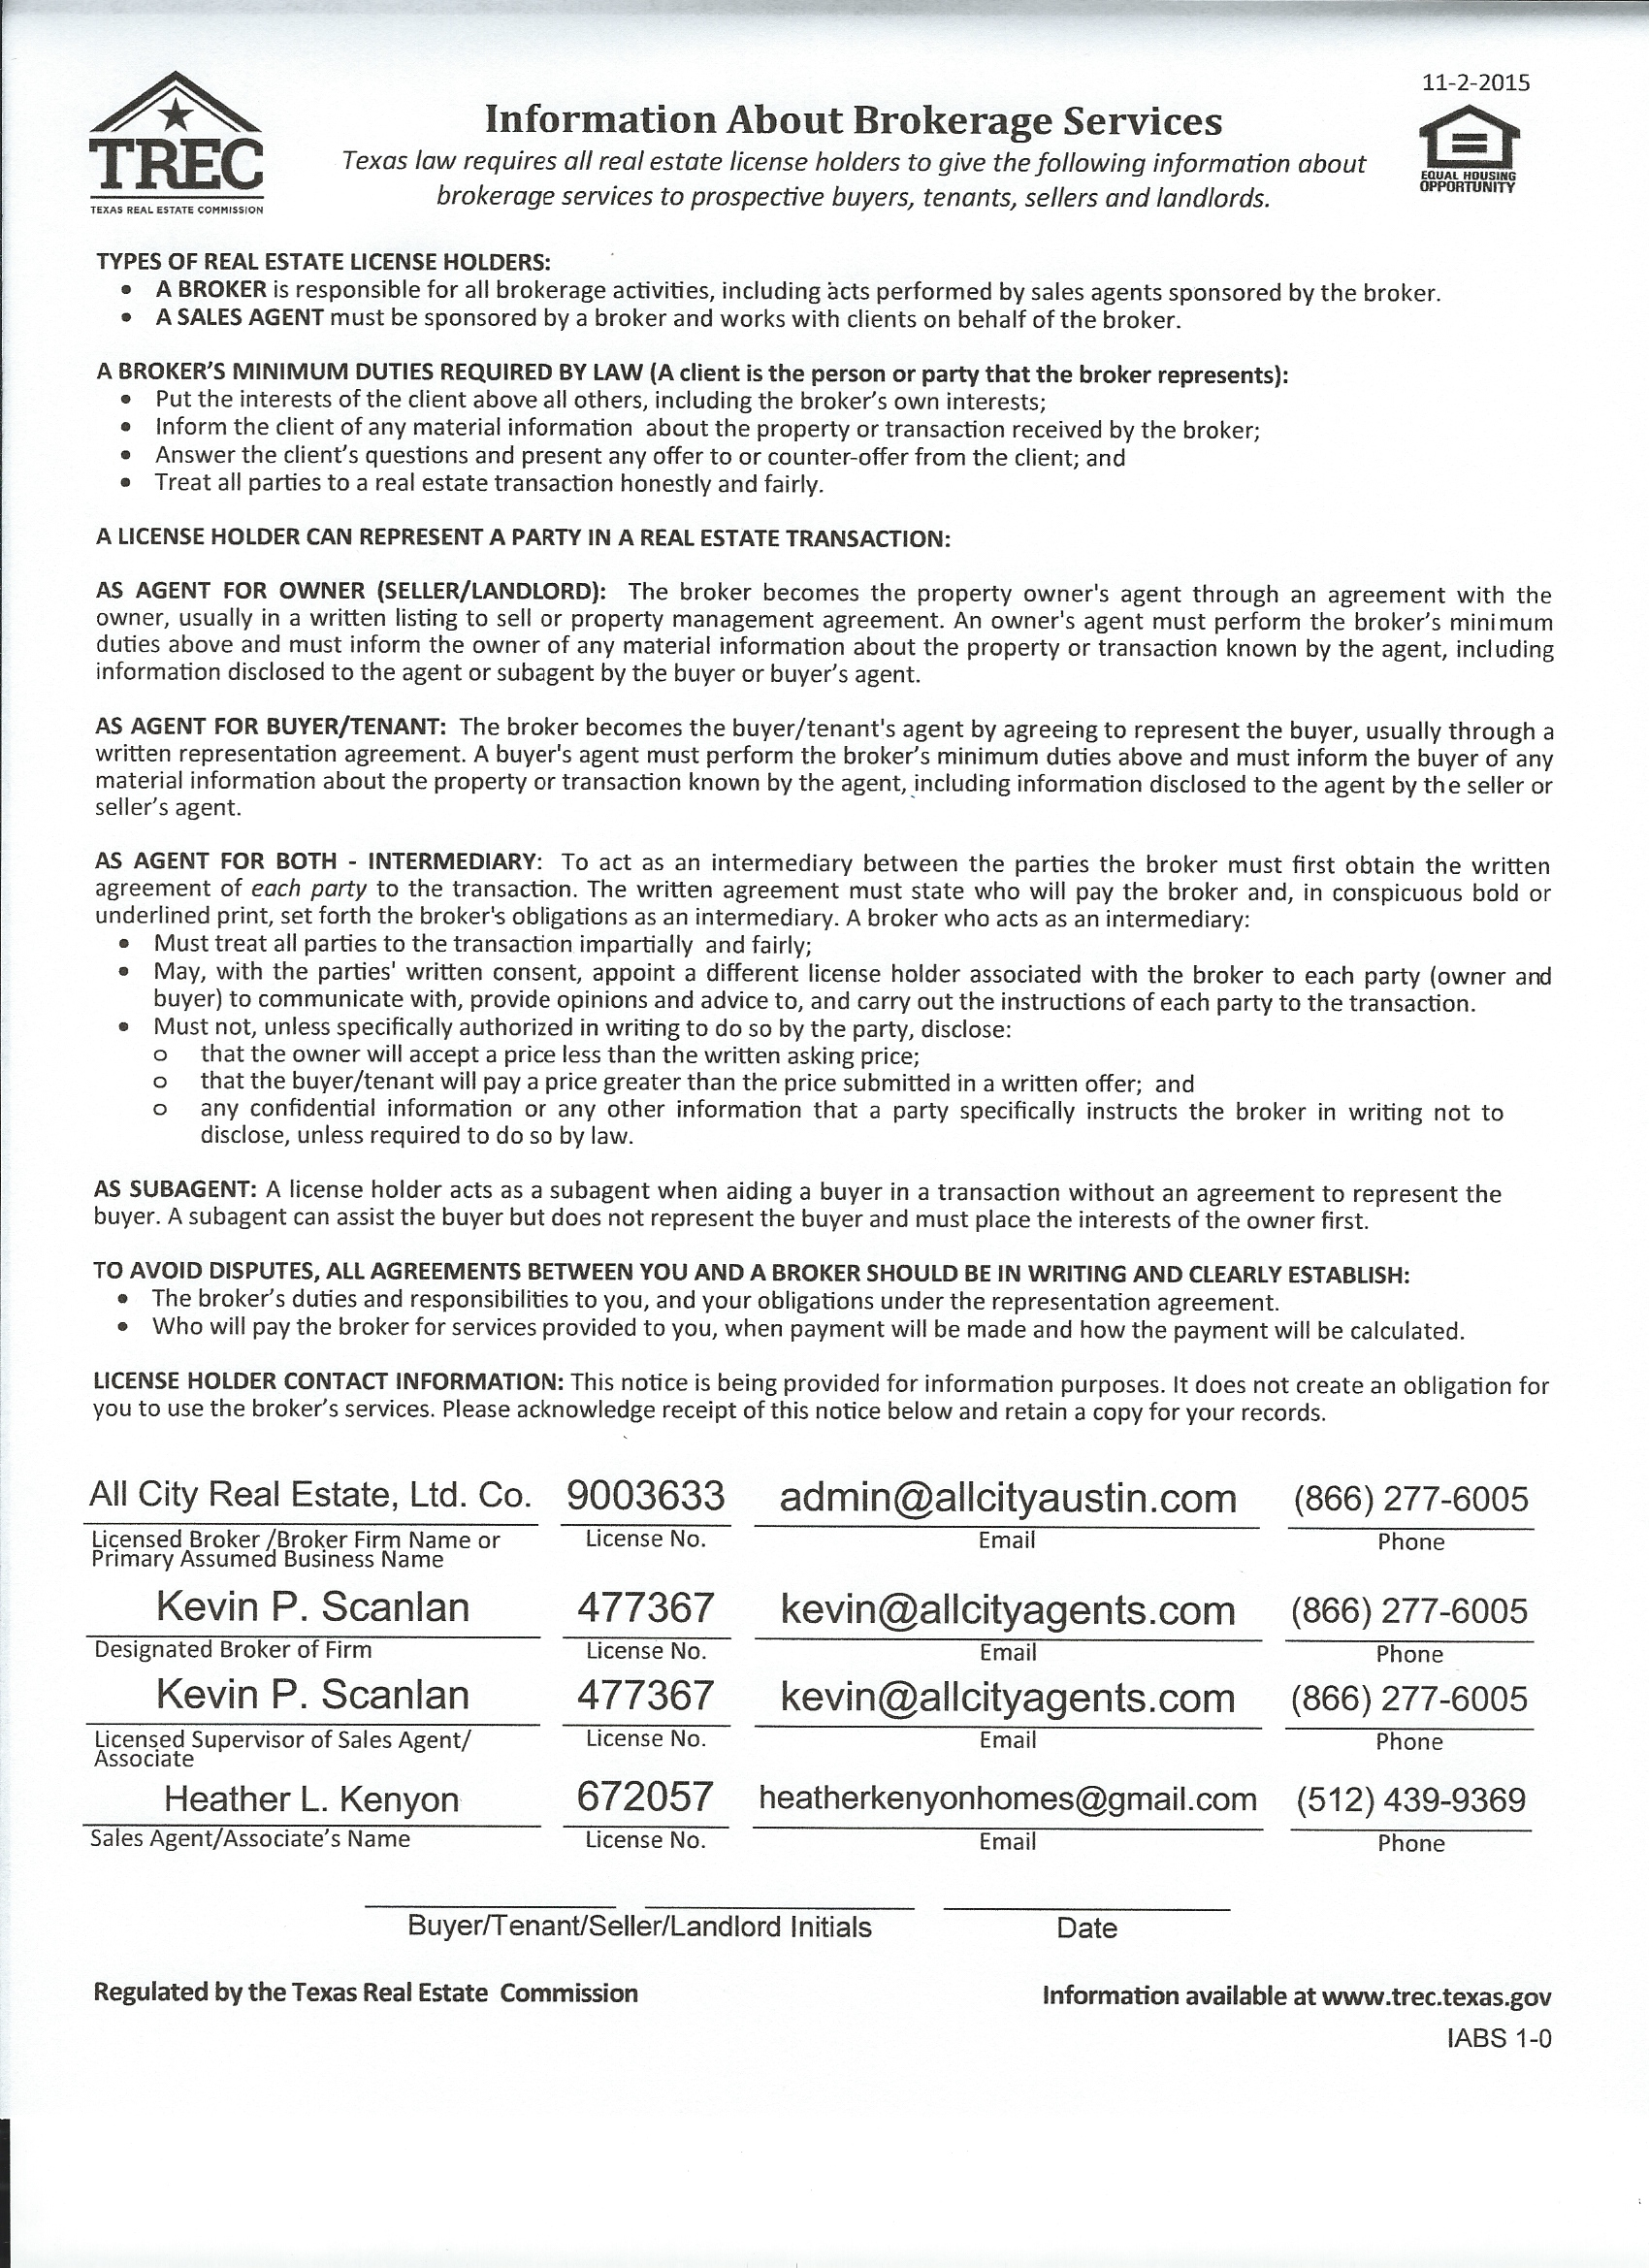 Texas real estate commission information about brokerage services texas real estate commission information about brokerage services platinumwayz